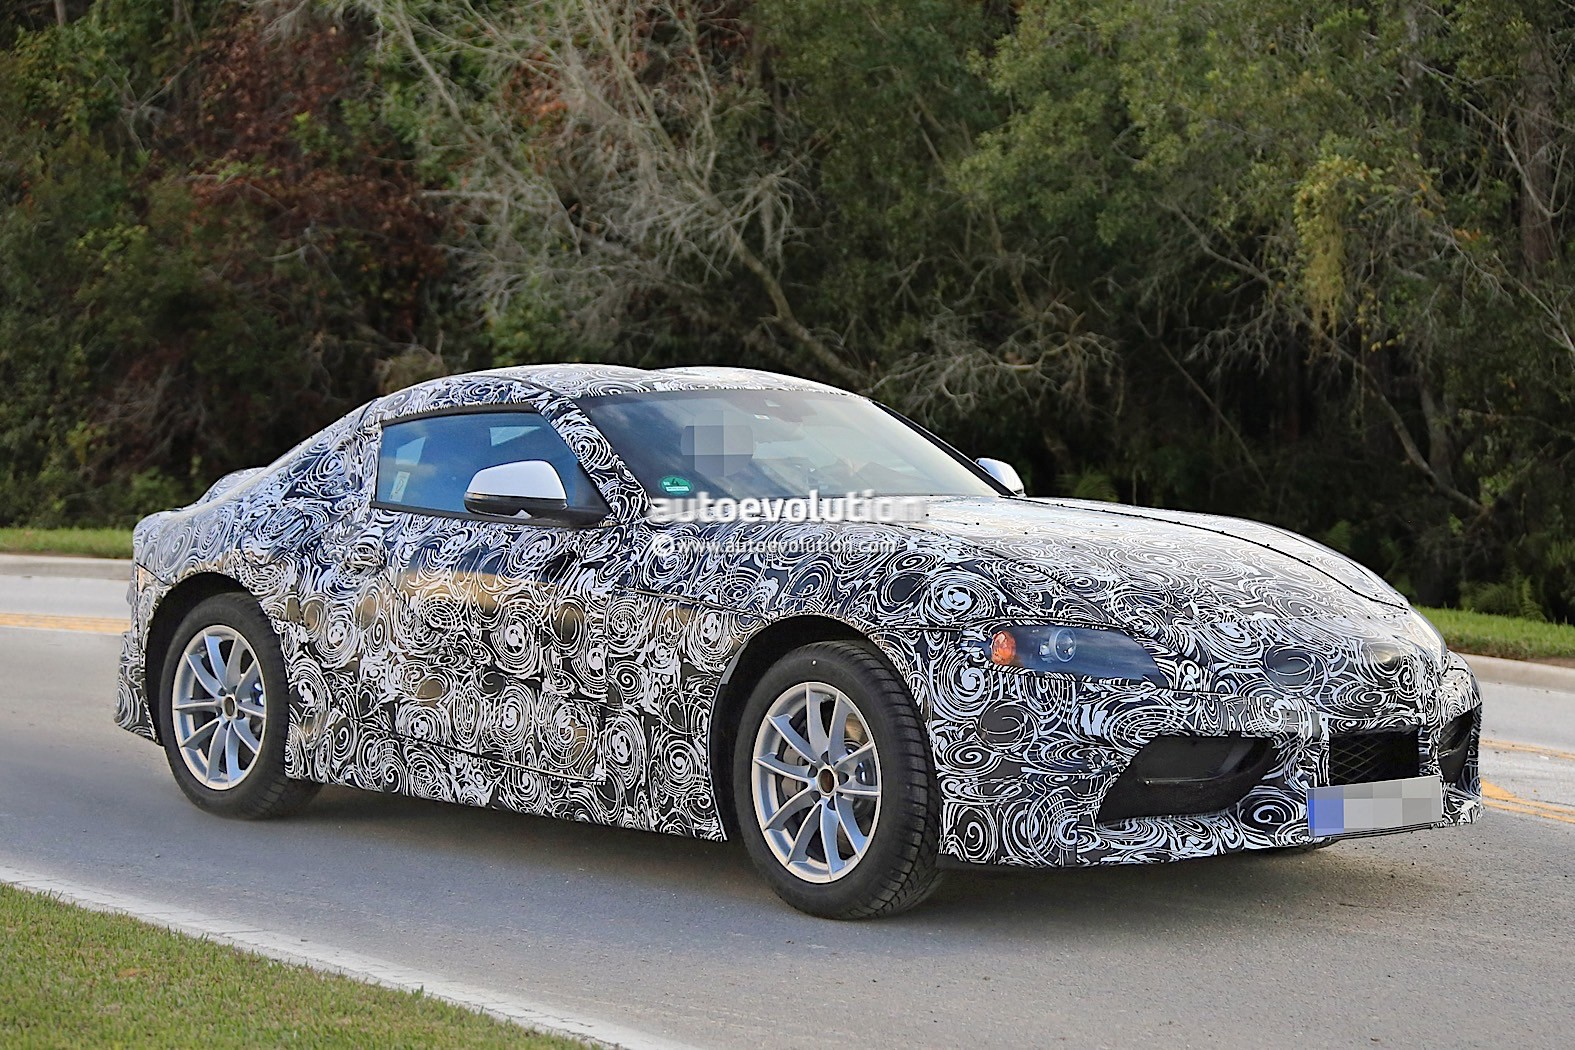 Toyota Ft 1 >> 2018 Toyota Supra Prototype Debuts Production Body, Looks Like Sterilized FT-1 - autoevolution